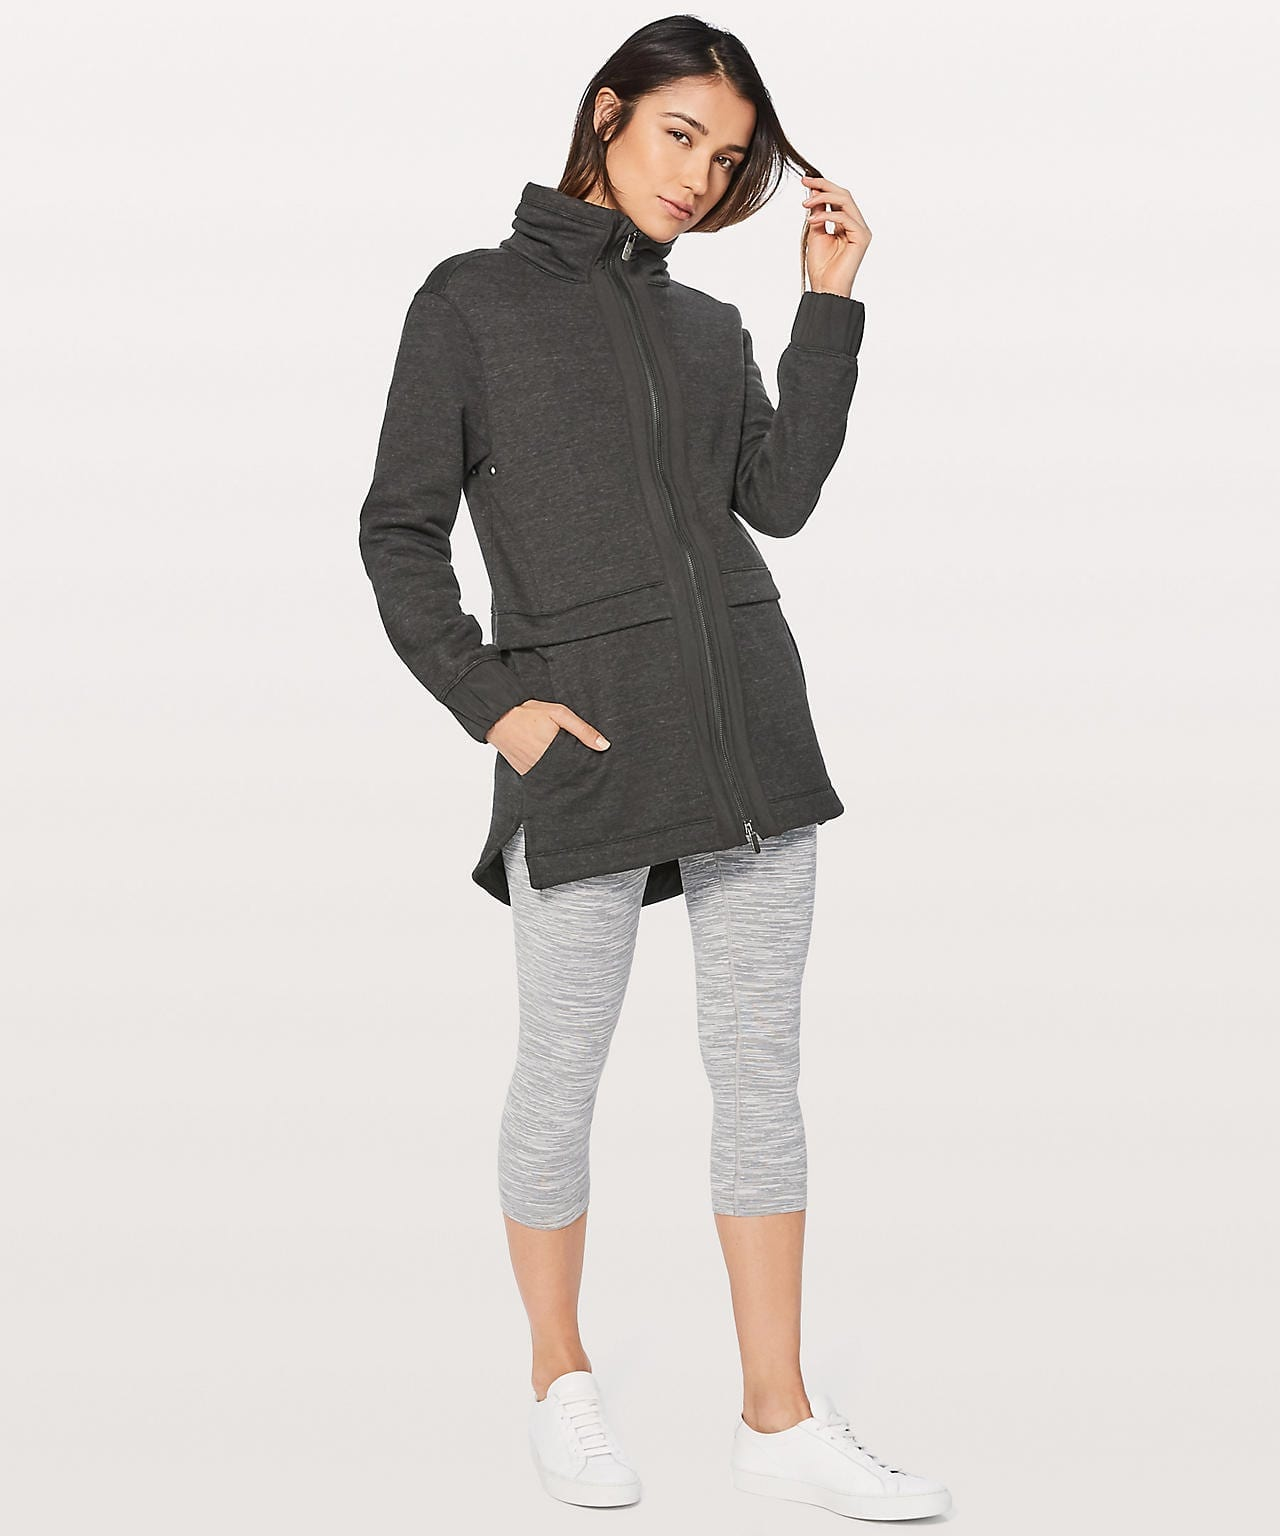 Light As Warmth Jacket